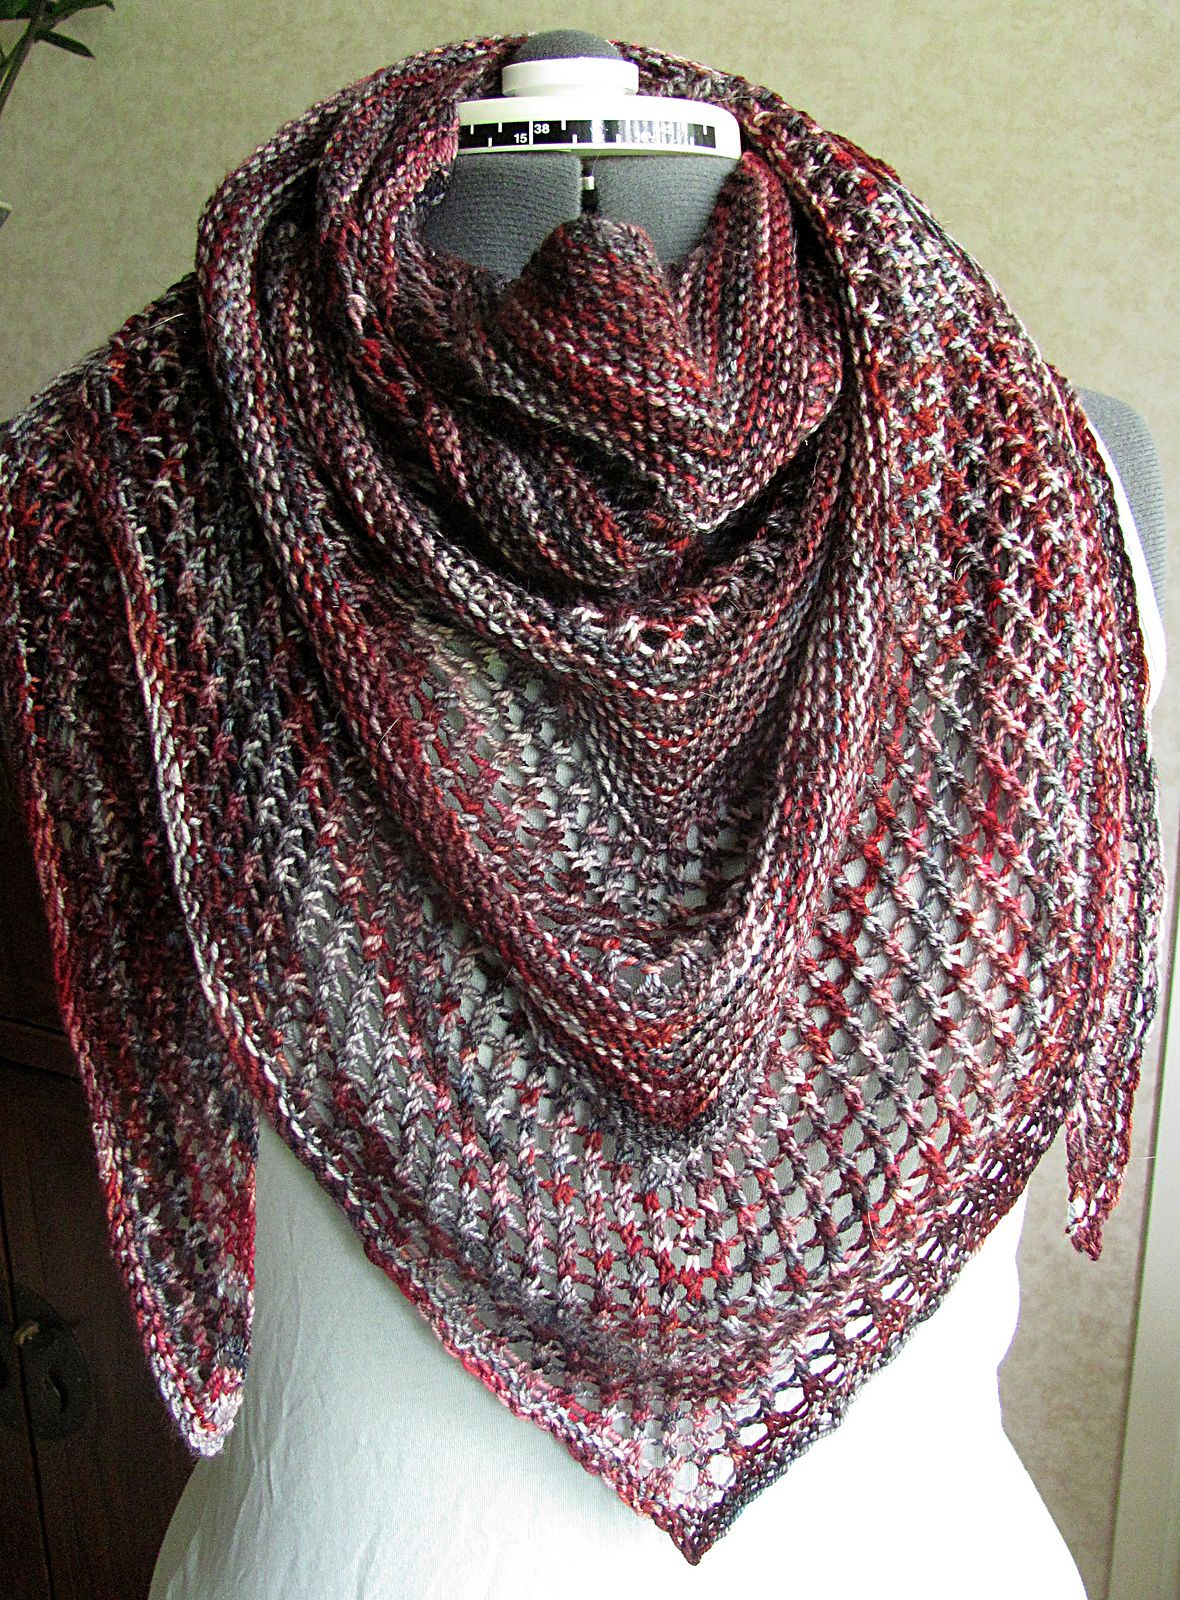 Reyna Shawl By Noora Laivola - Free Knitted Pattern